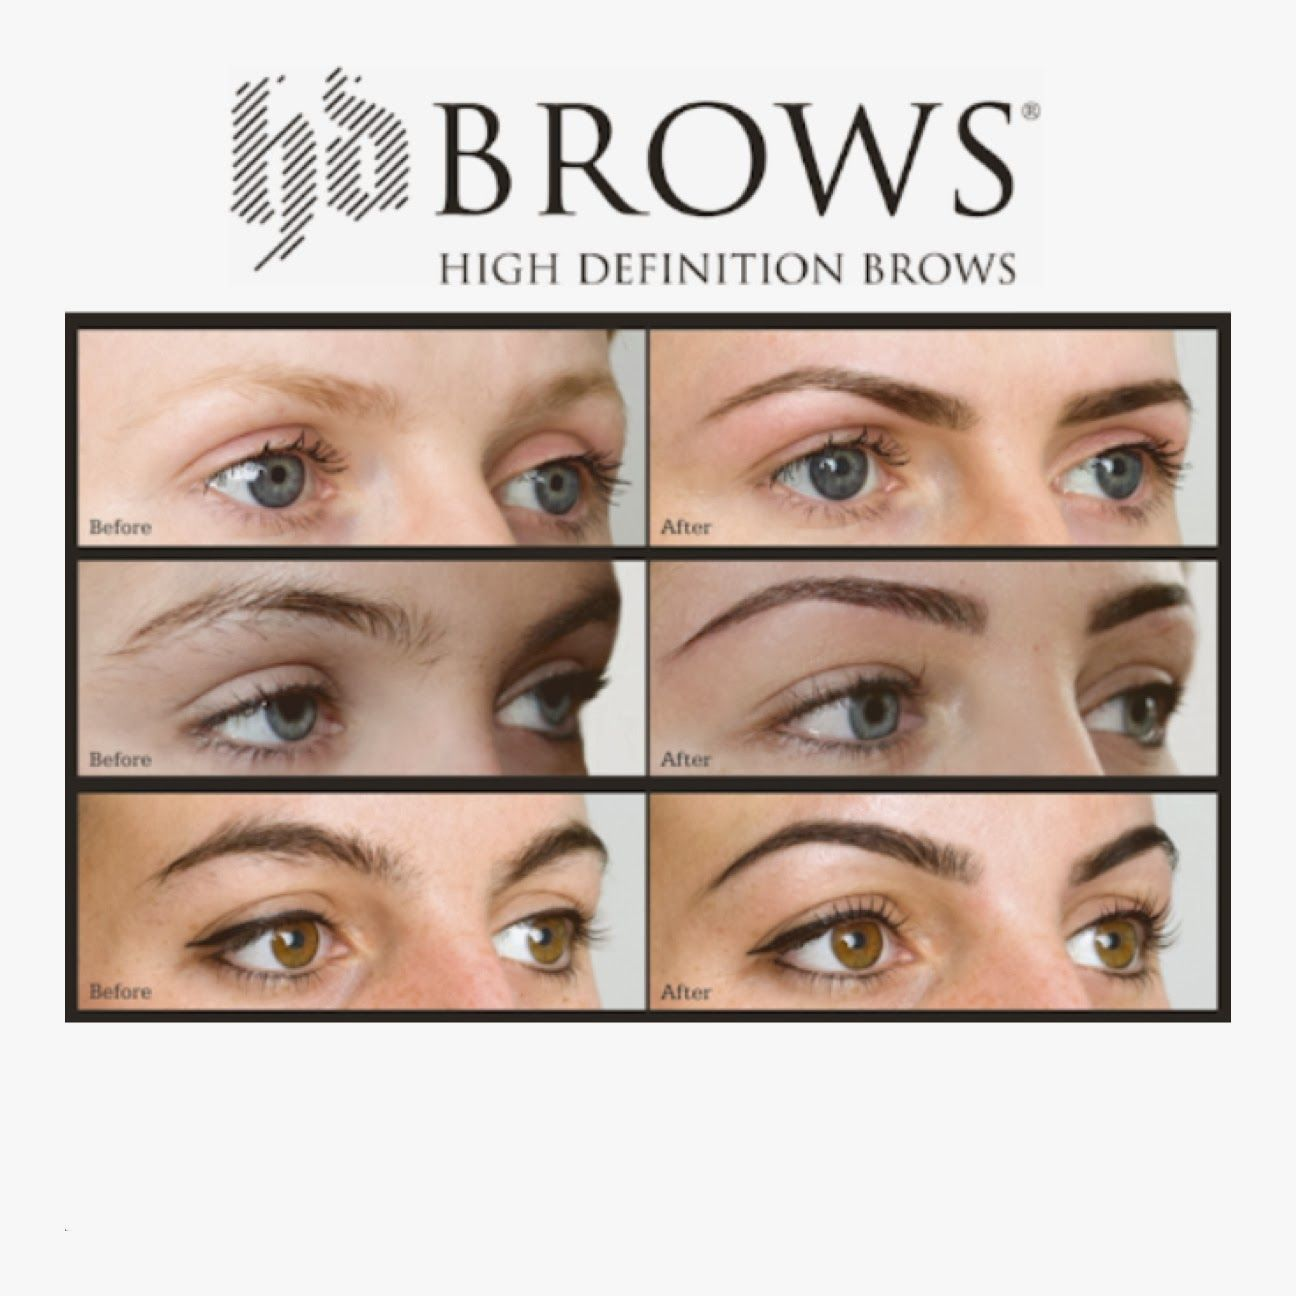 Stylekt11 Beauty Hd Brows Beauty Pinterest Hd Brows Brows